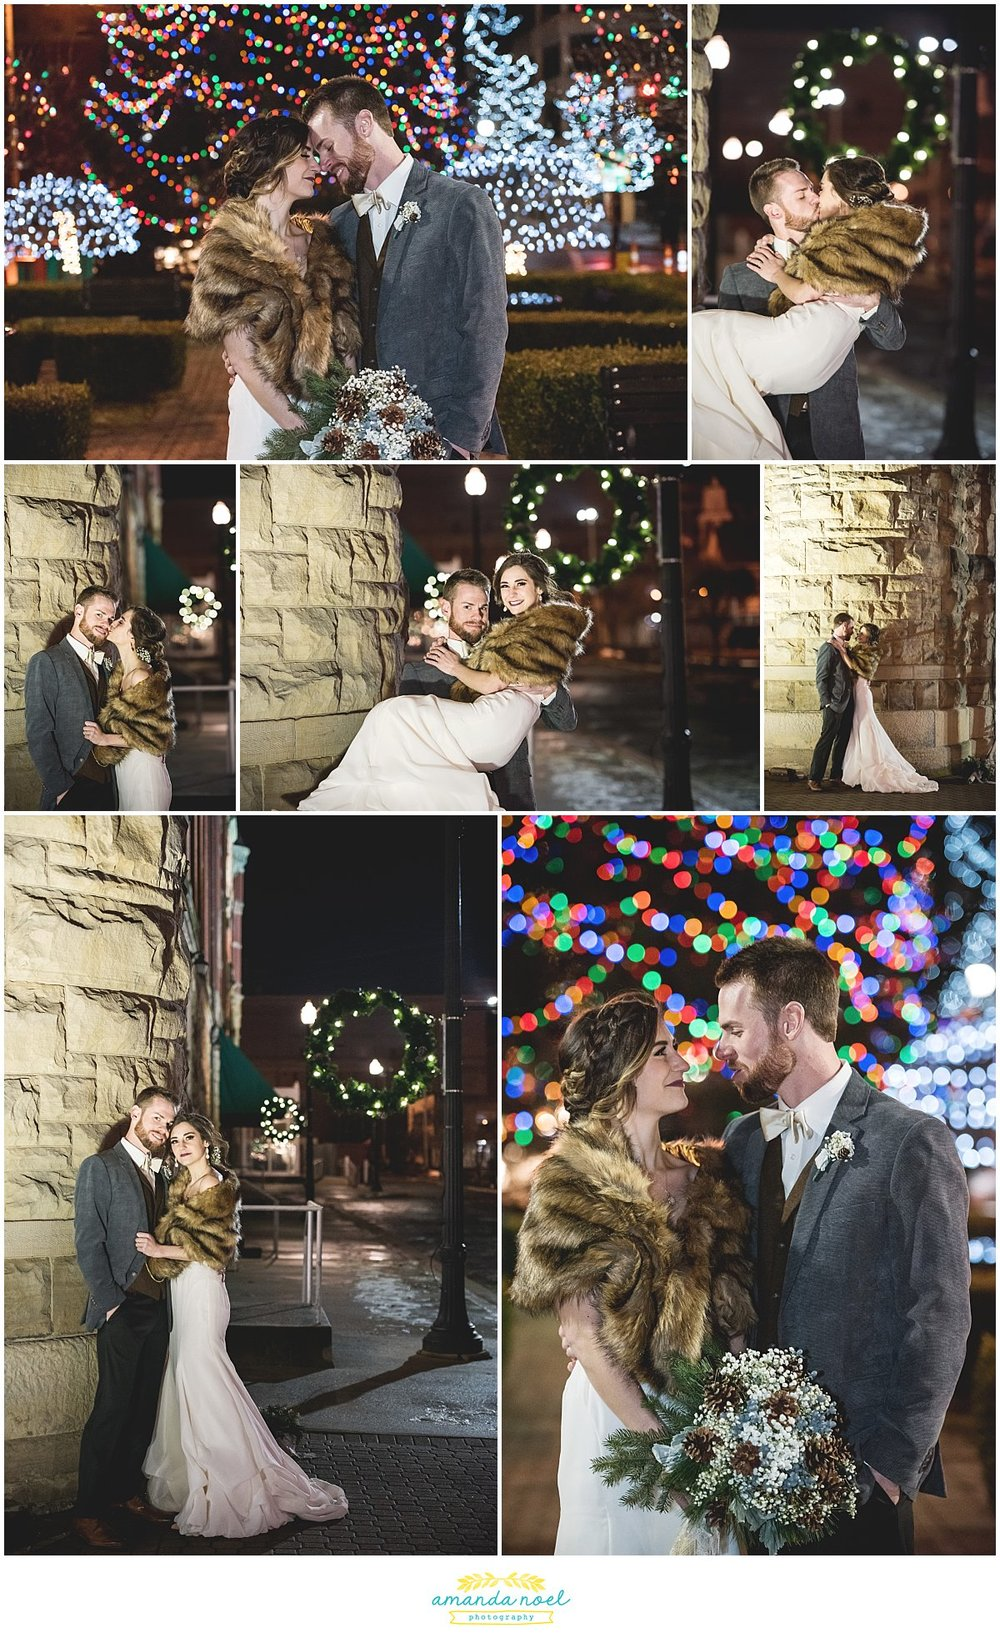 Springfield Ohio winter wedding couple portraits downtown Christmas lights | Amanda Noel Photography